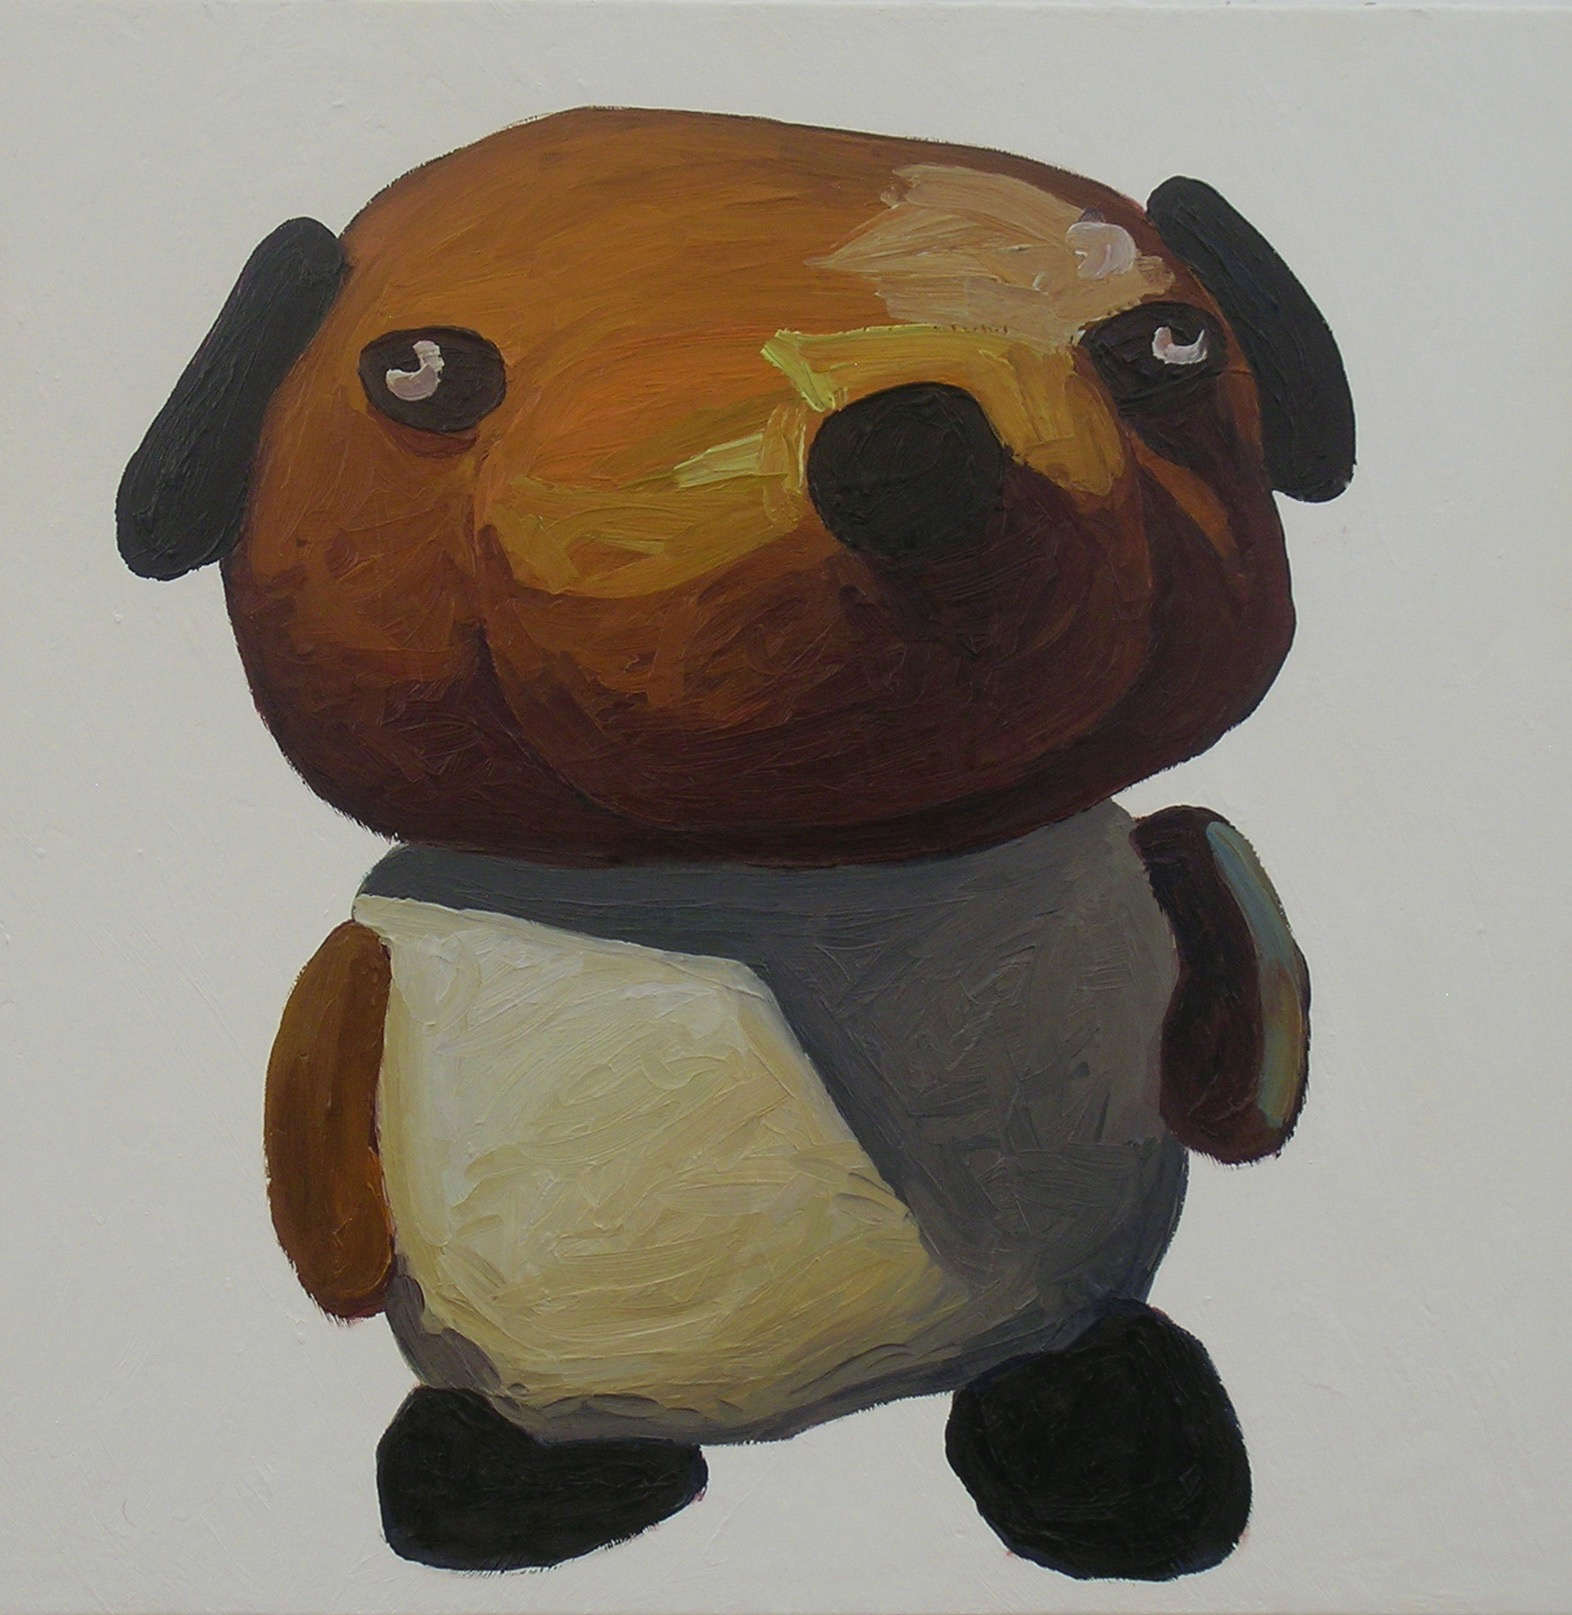 Peter Opheim   Brown Bear   2013  Oil on canvas  Signed, titled, and dated by the artist,  verso   22 x 22 inches